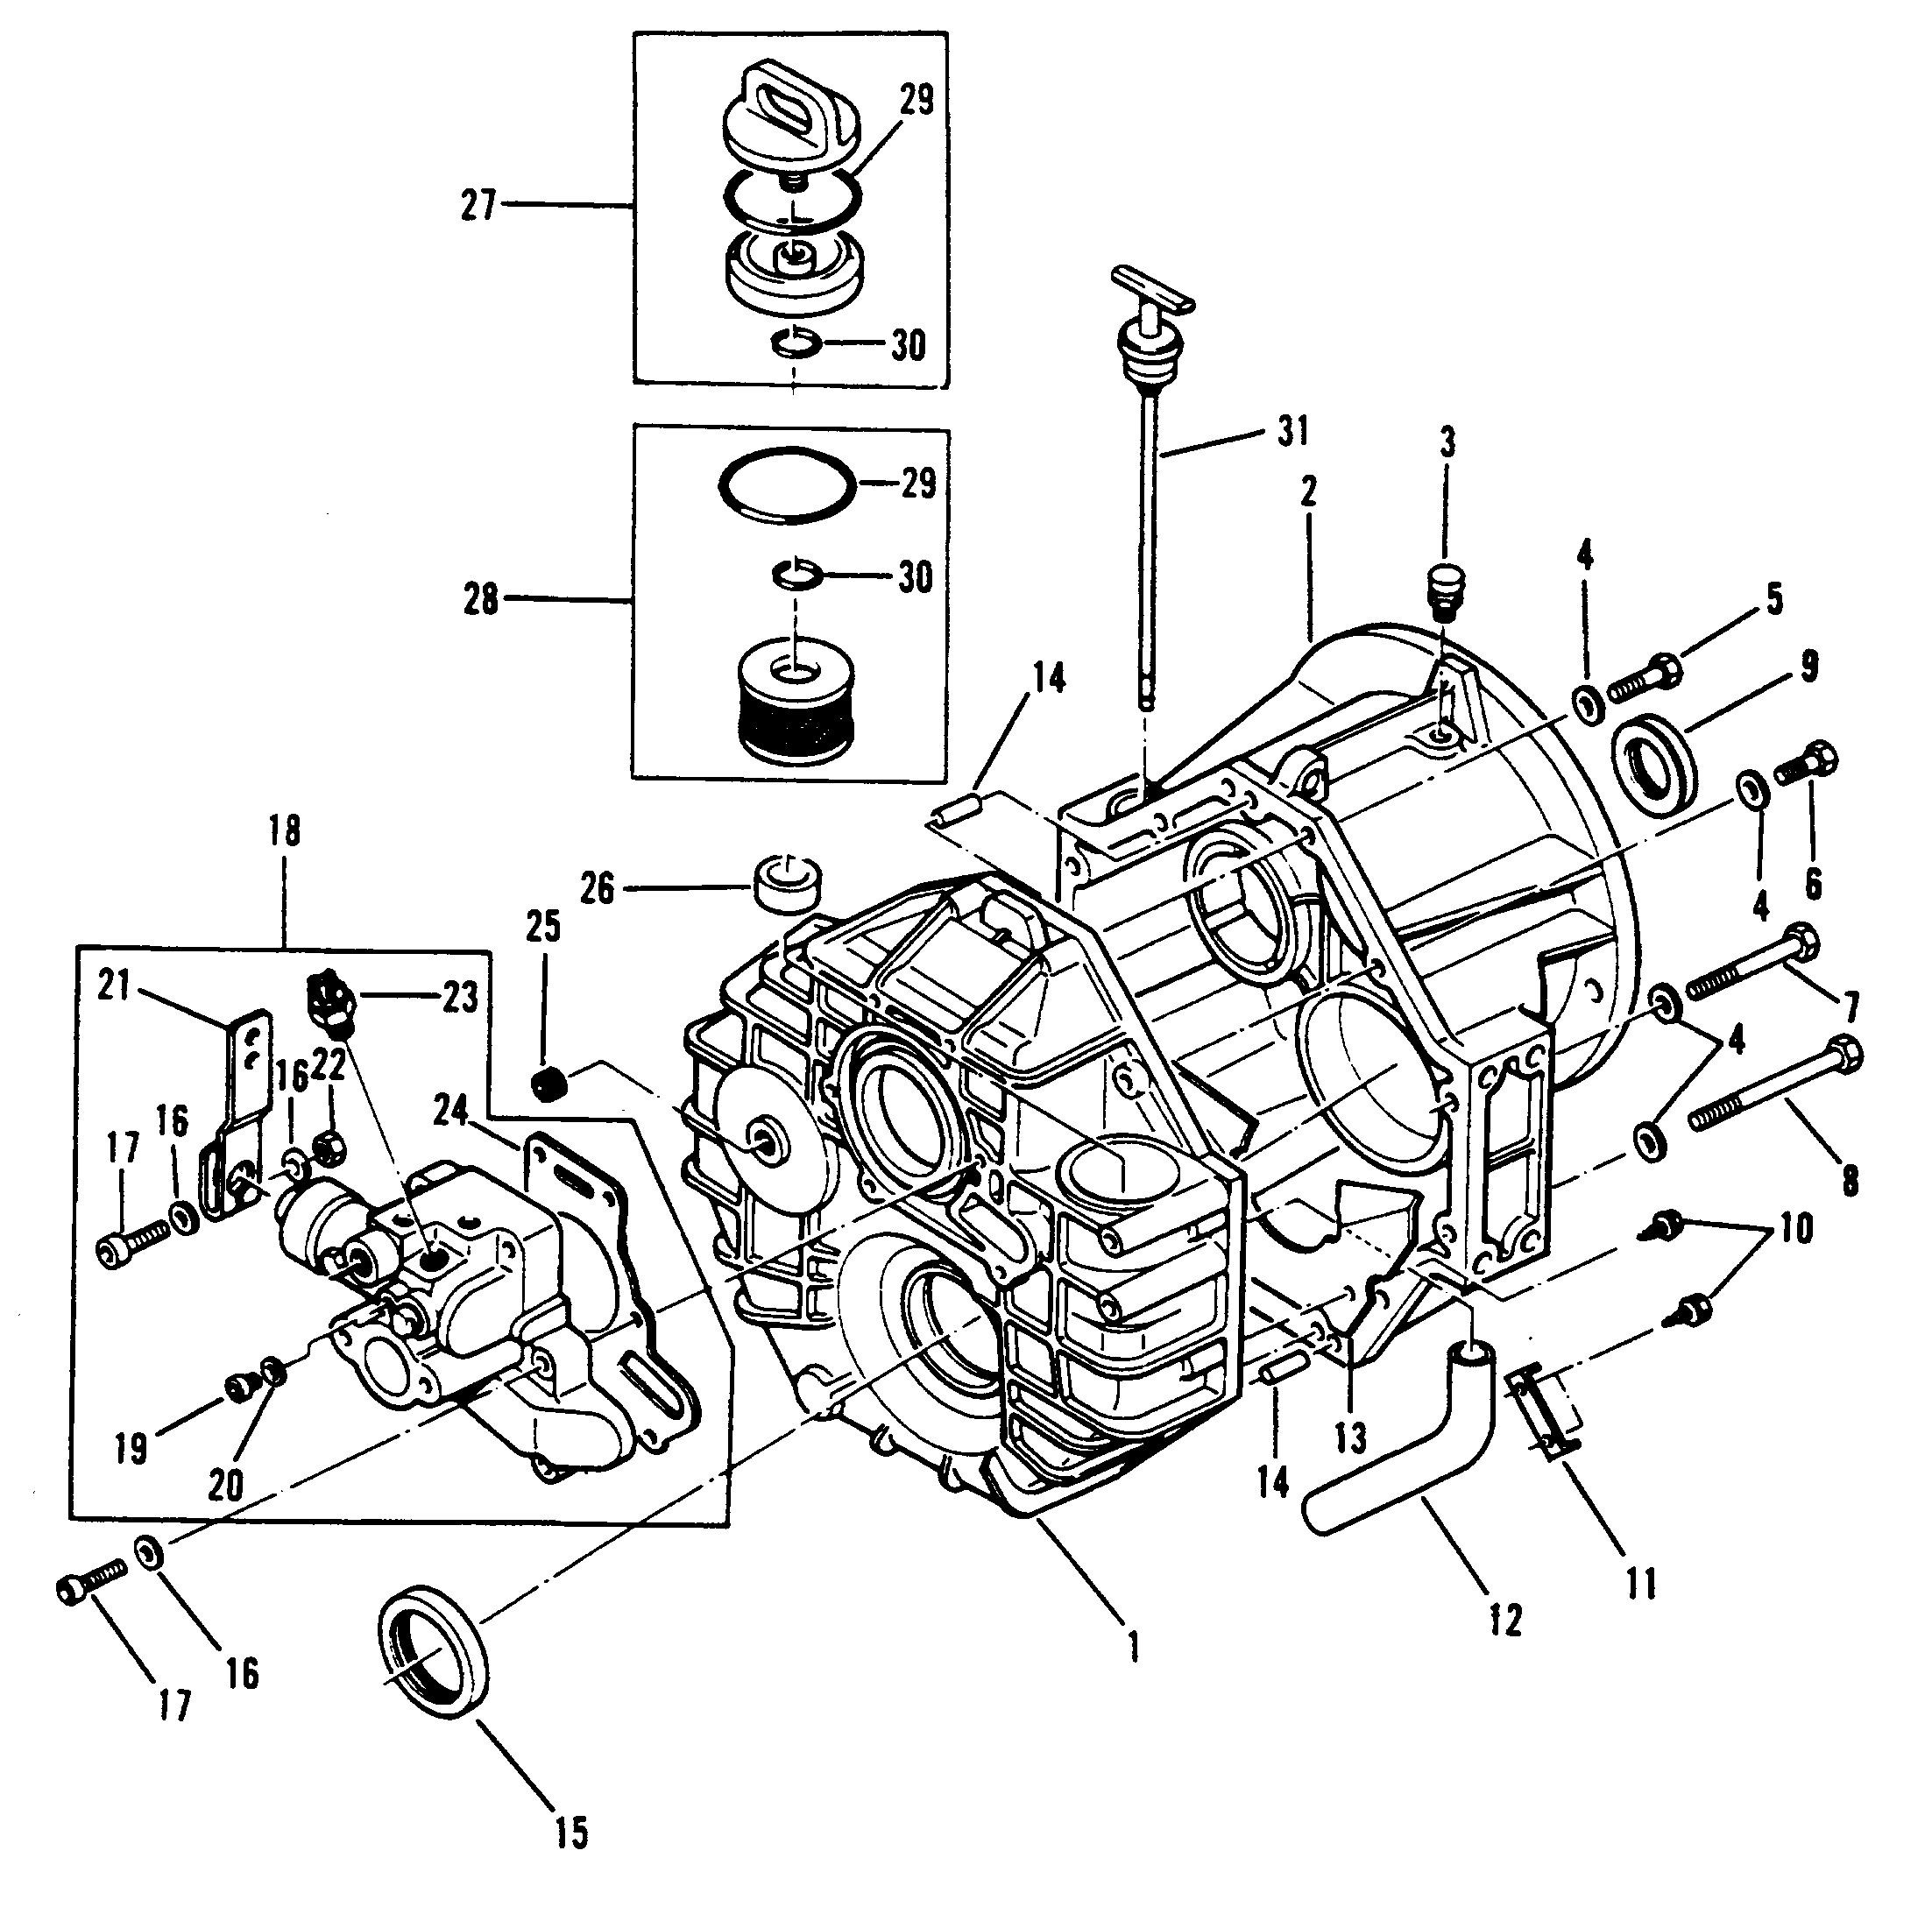 Wiring Diagram Of 1967 Austin Healey Sprite as well Mini Cooper Wiring Harness also 1972 R 75 Wiring Harness moreover Mini R53 Engine Diagram likewise Wiring Diagram R513 R68 2. on bmw r60 2 wiring diagram